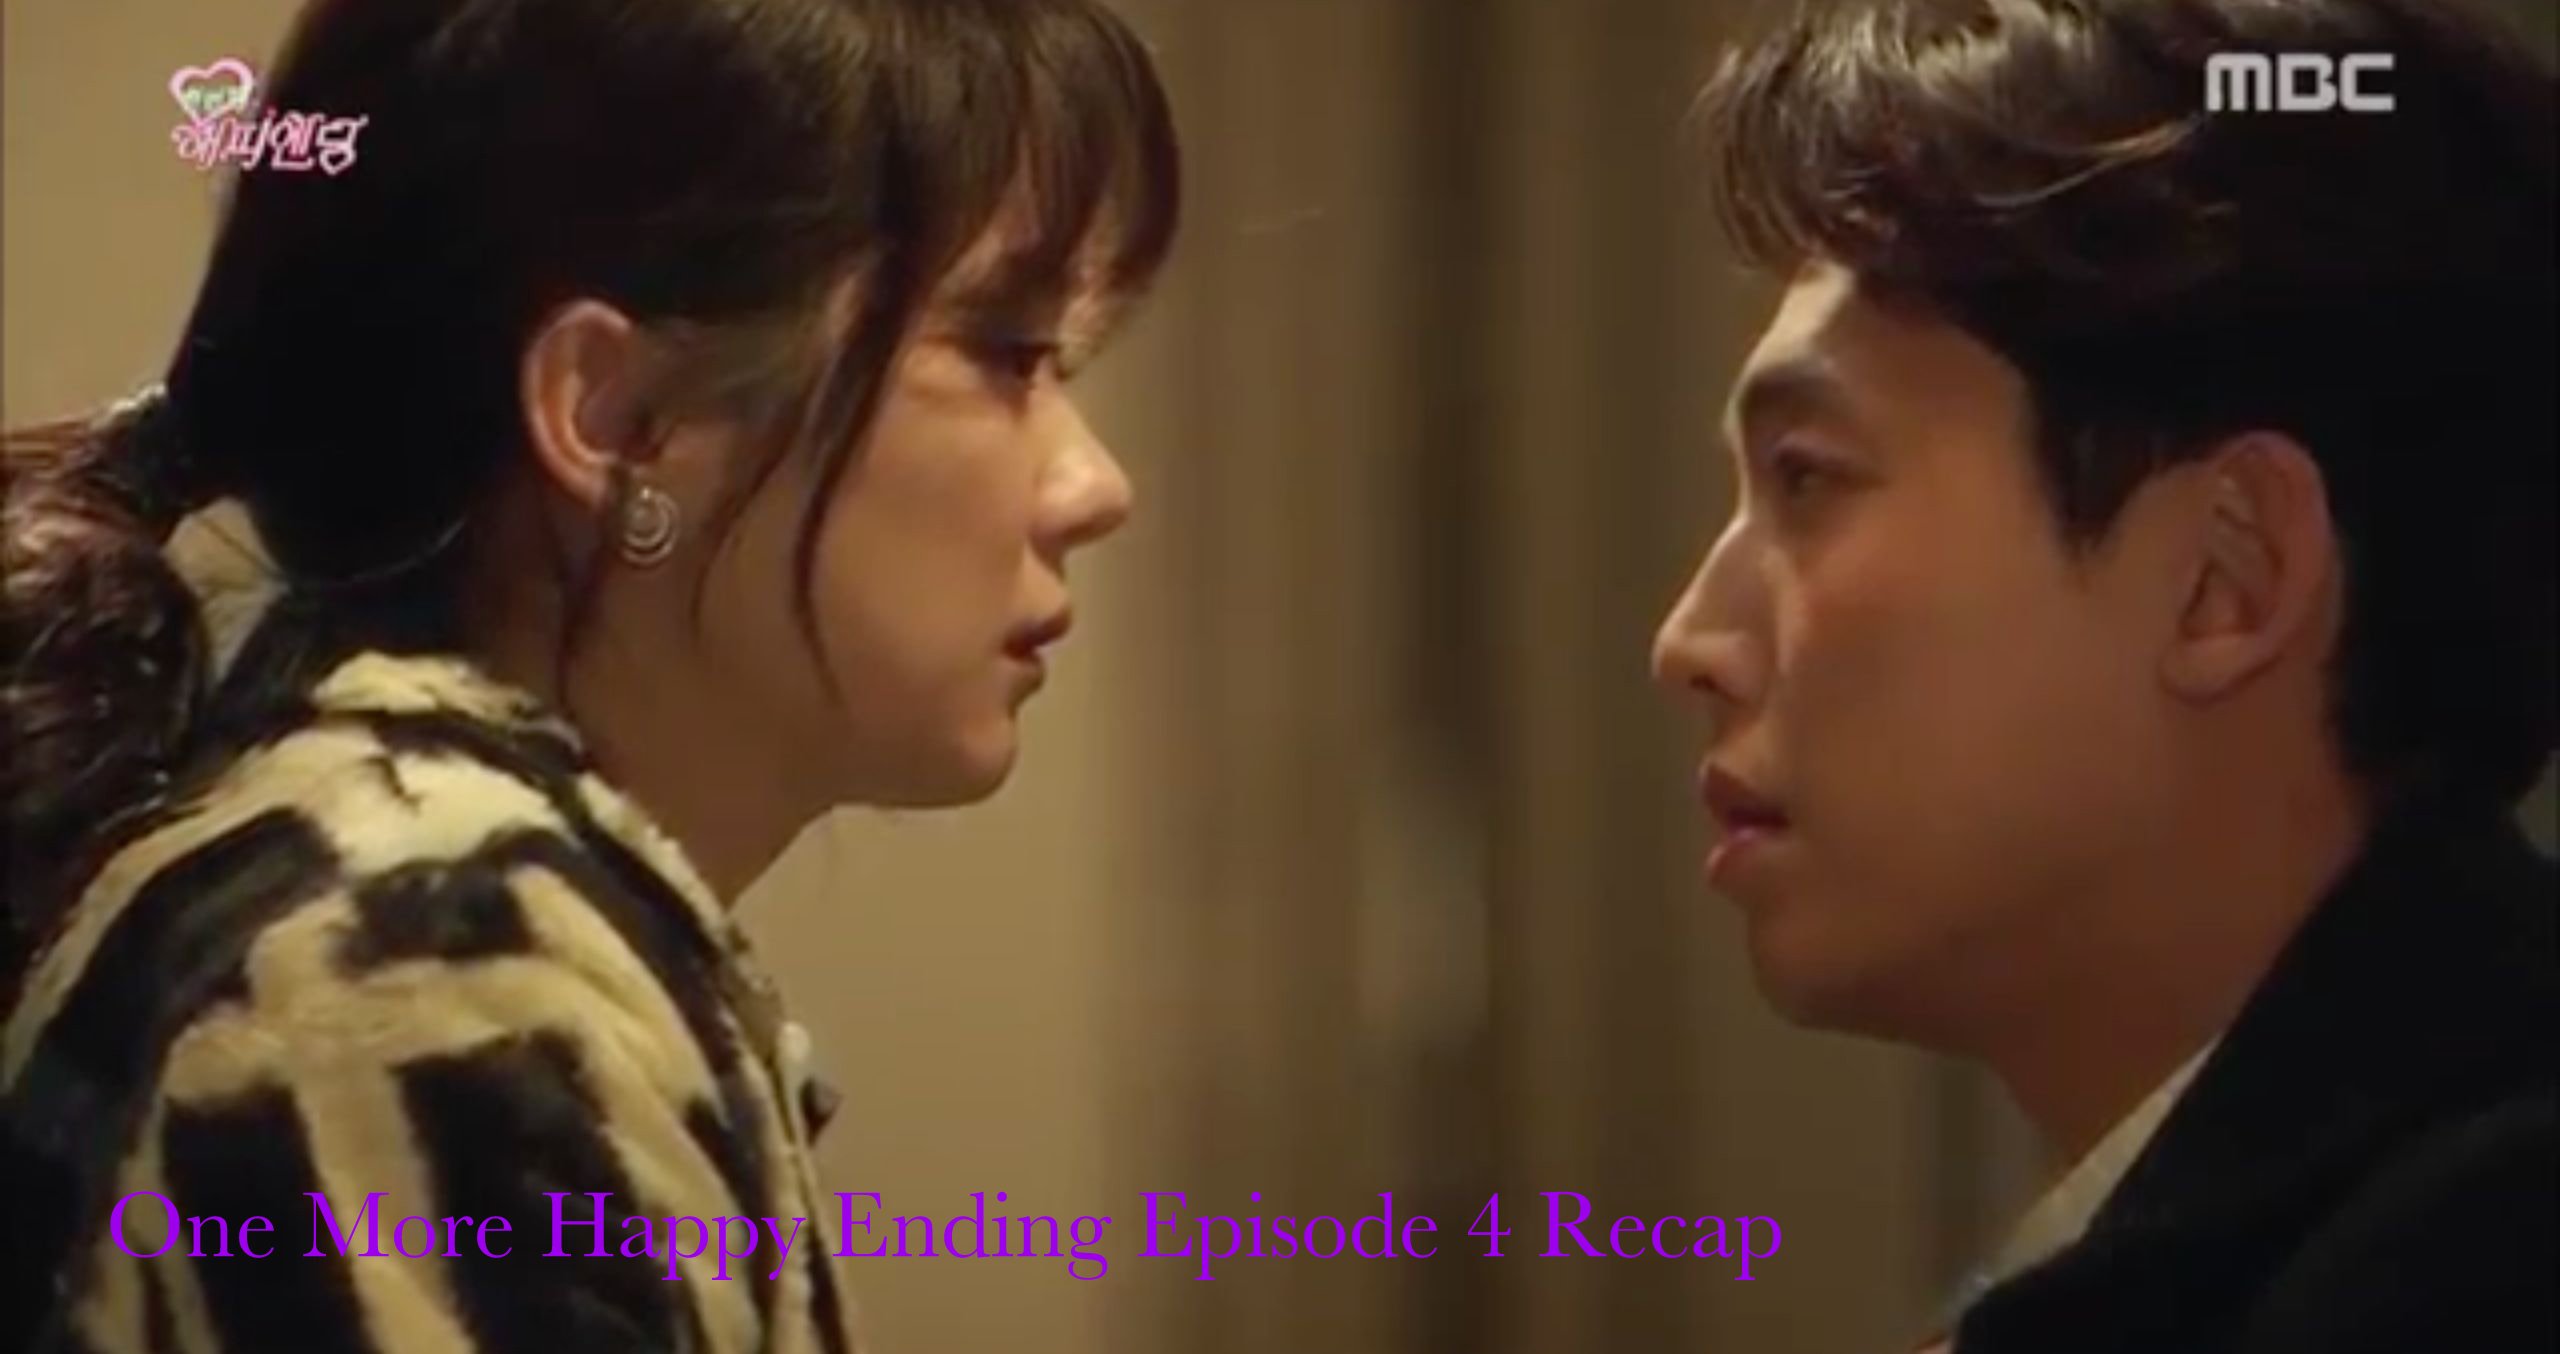 Drama Recap: One More Happy Ending Ep 4 - OH! Press